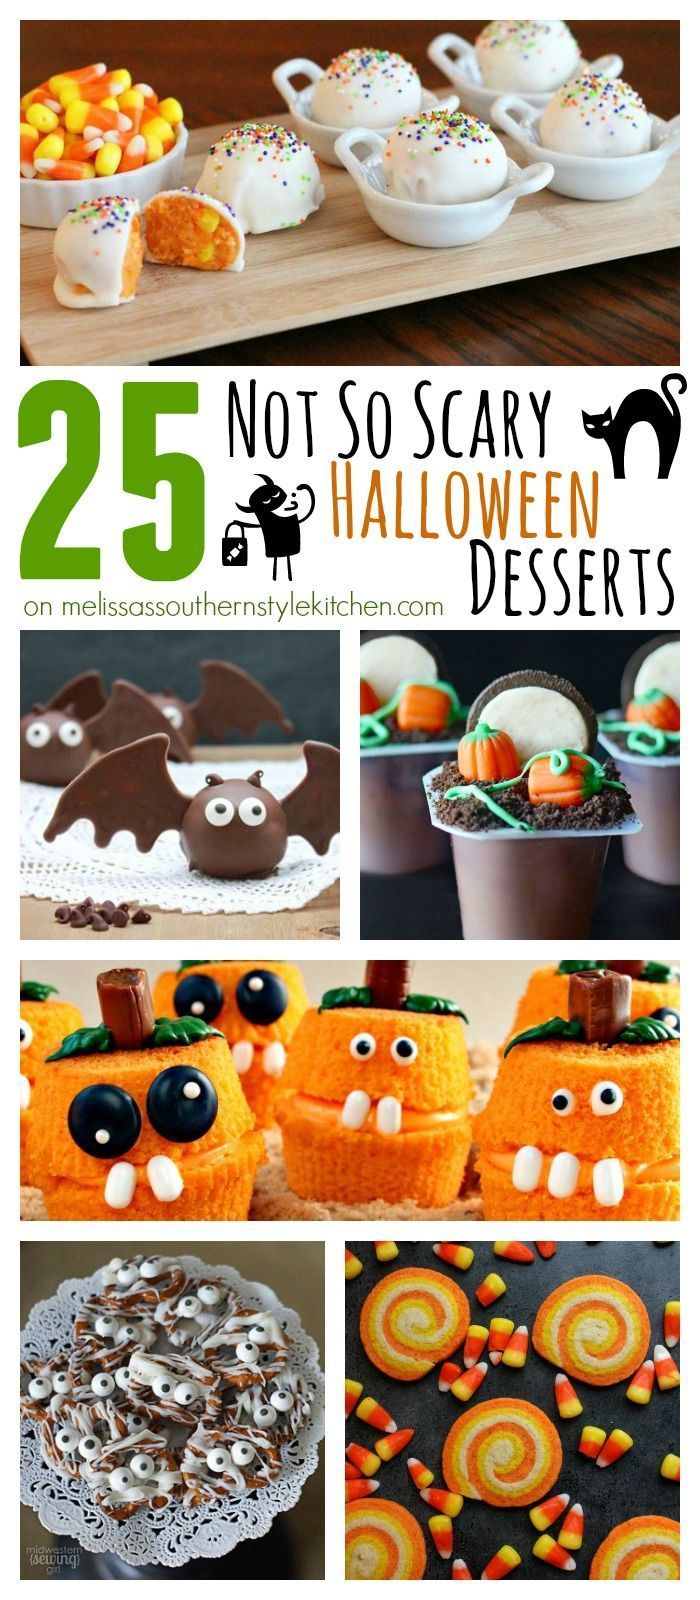 25 not so scary halloween desserts - Scary Halloween Dessert